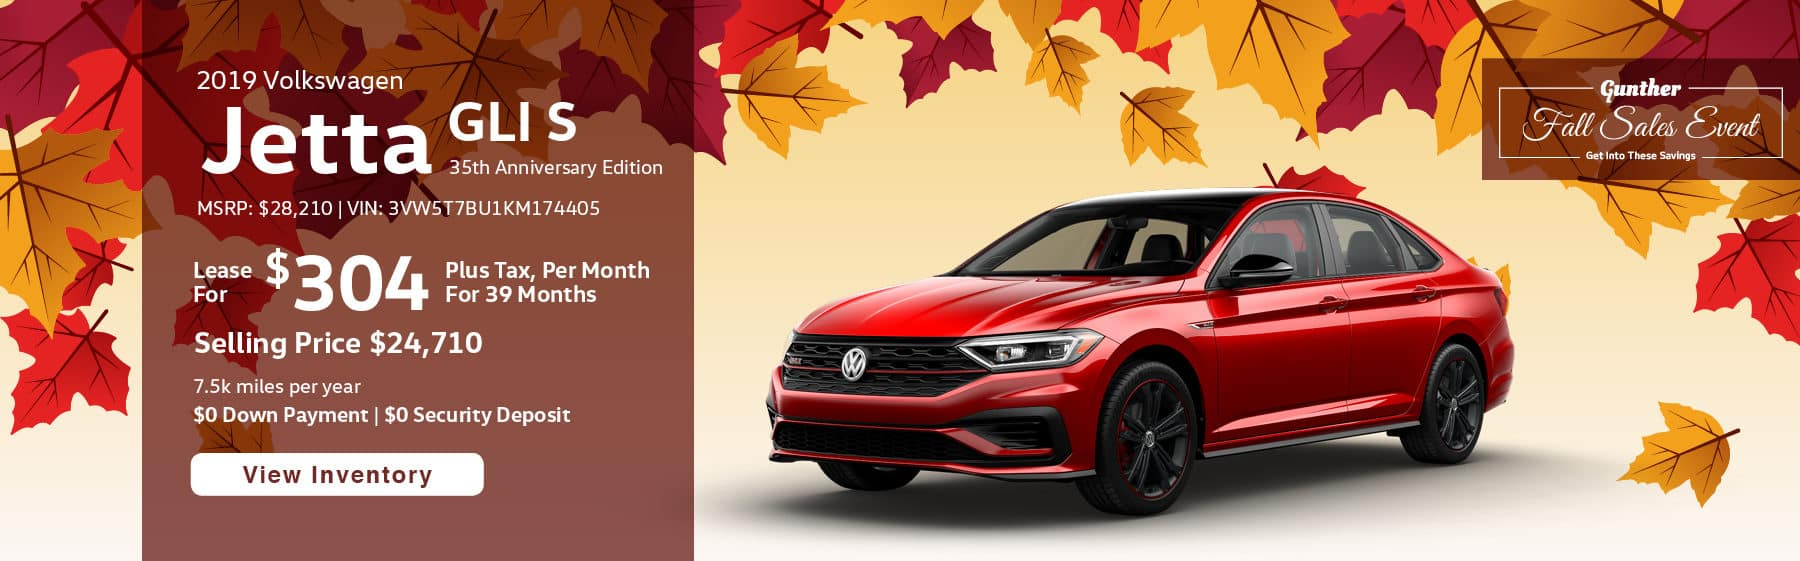 Lease the 2019 Jetta GLI 35th Anniversary Edition for $304 per month, plus tax for 39 months.